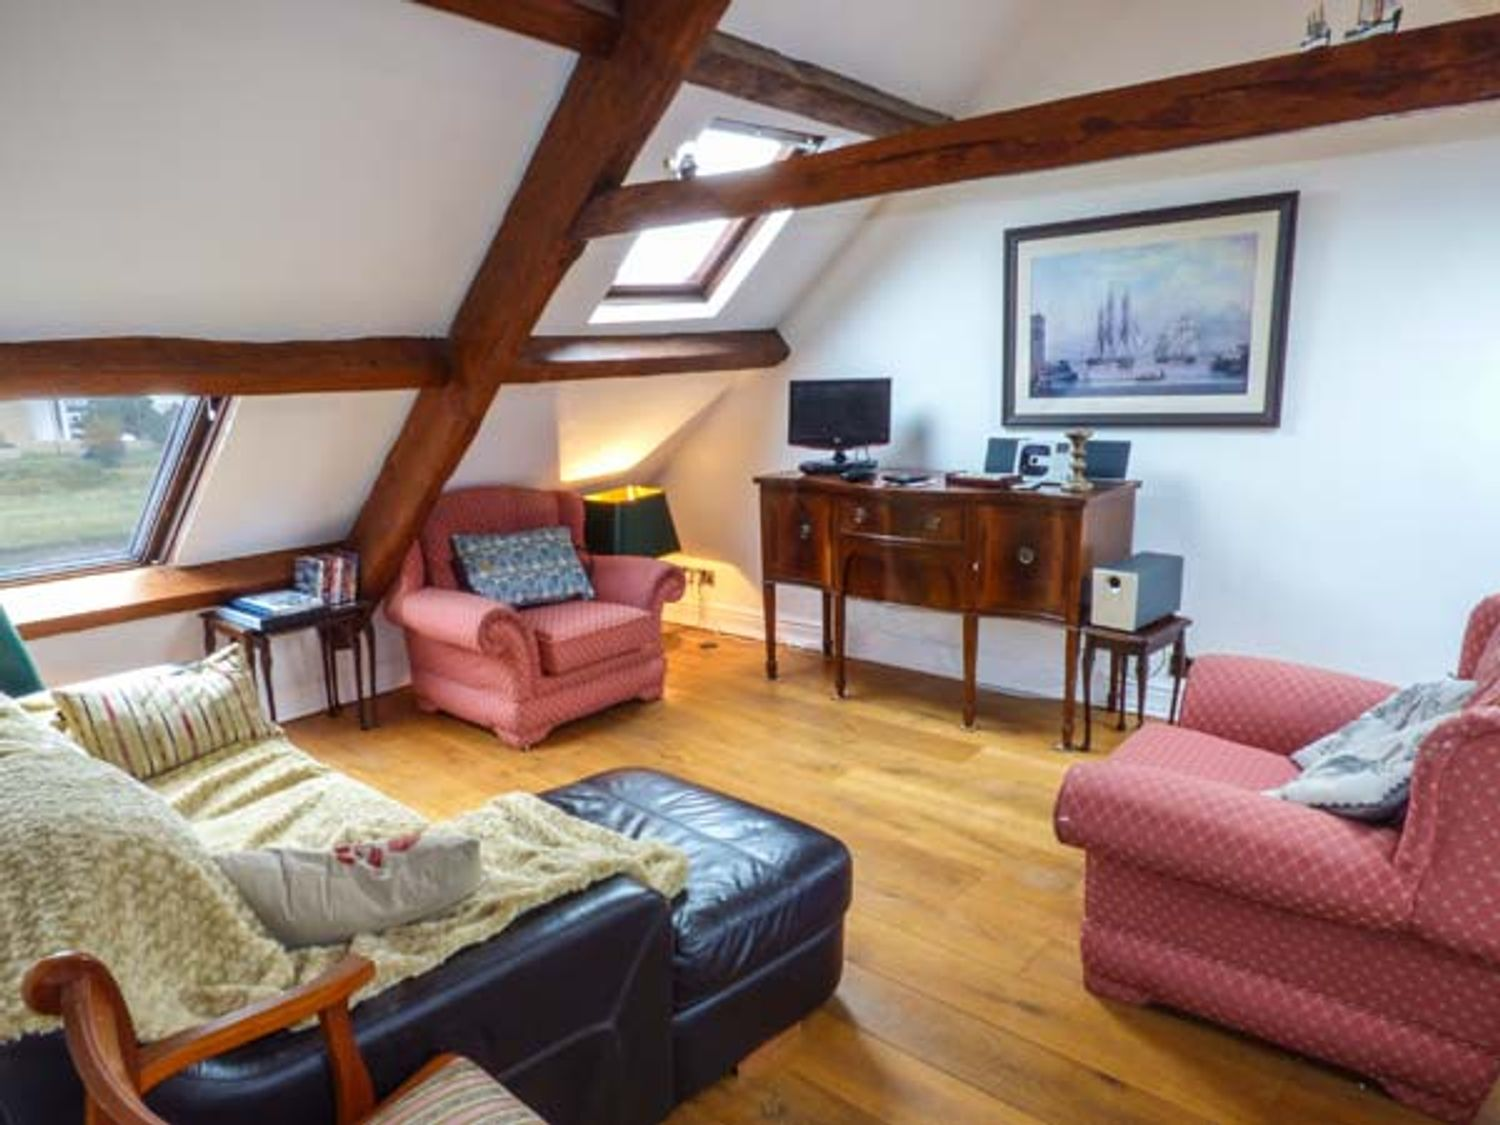 25 St. Georges Quay - Lake District - 1064141 - photo 1